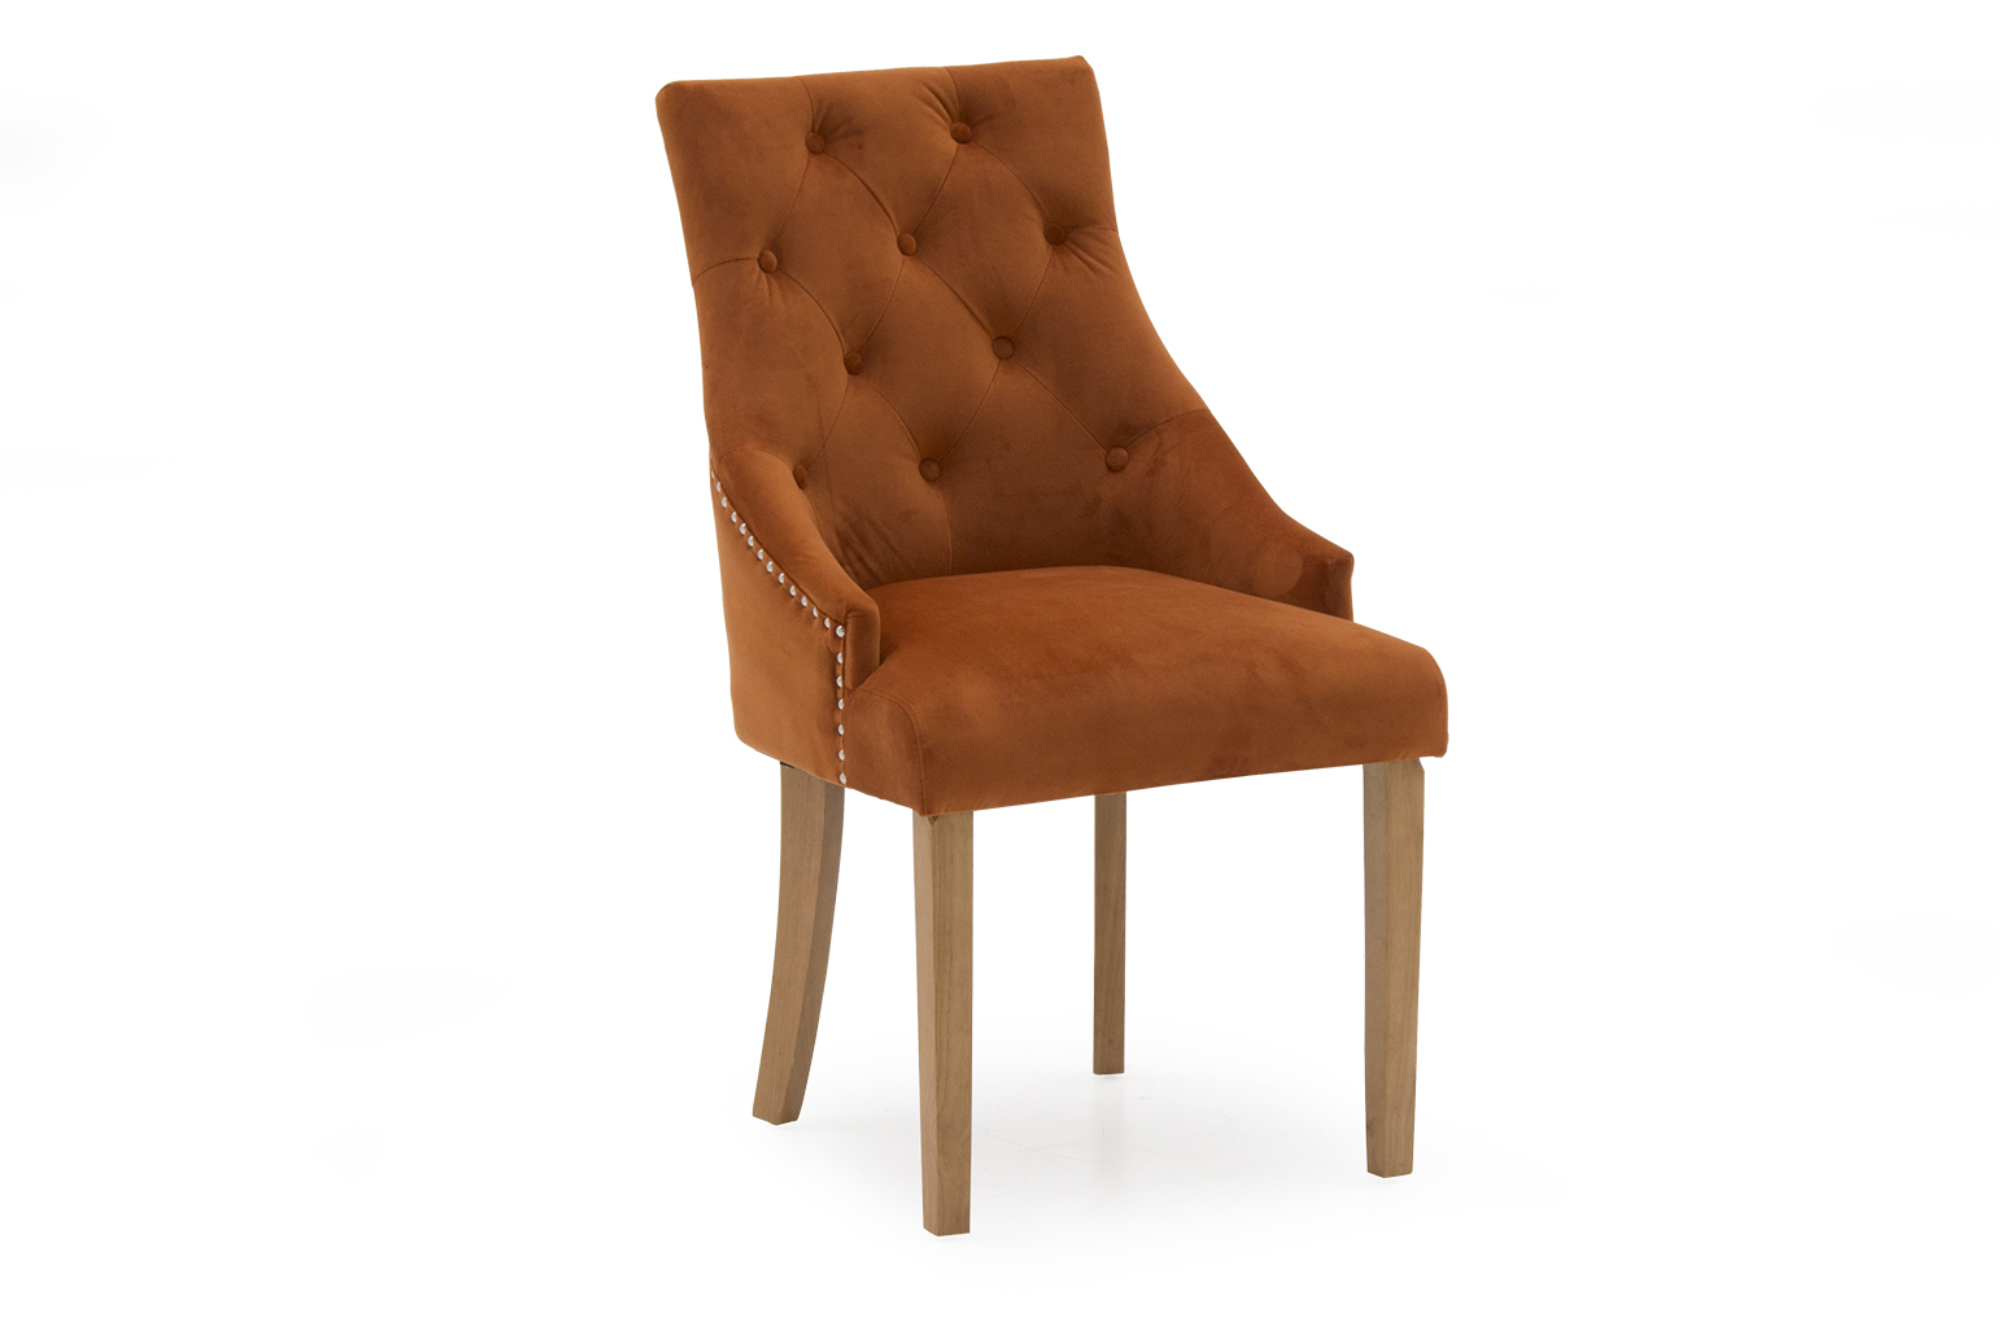 https://www.firstfurniture.co.uk/pub/media/catalog/product/1/5/1504870335_Velvet_20Pumpkin_20-_20Angled.jpg